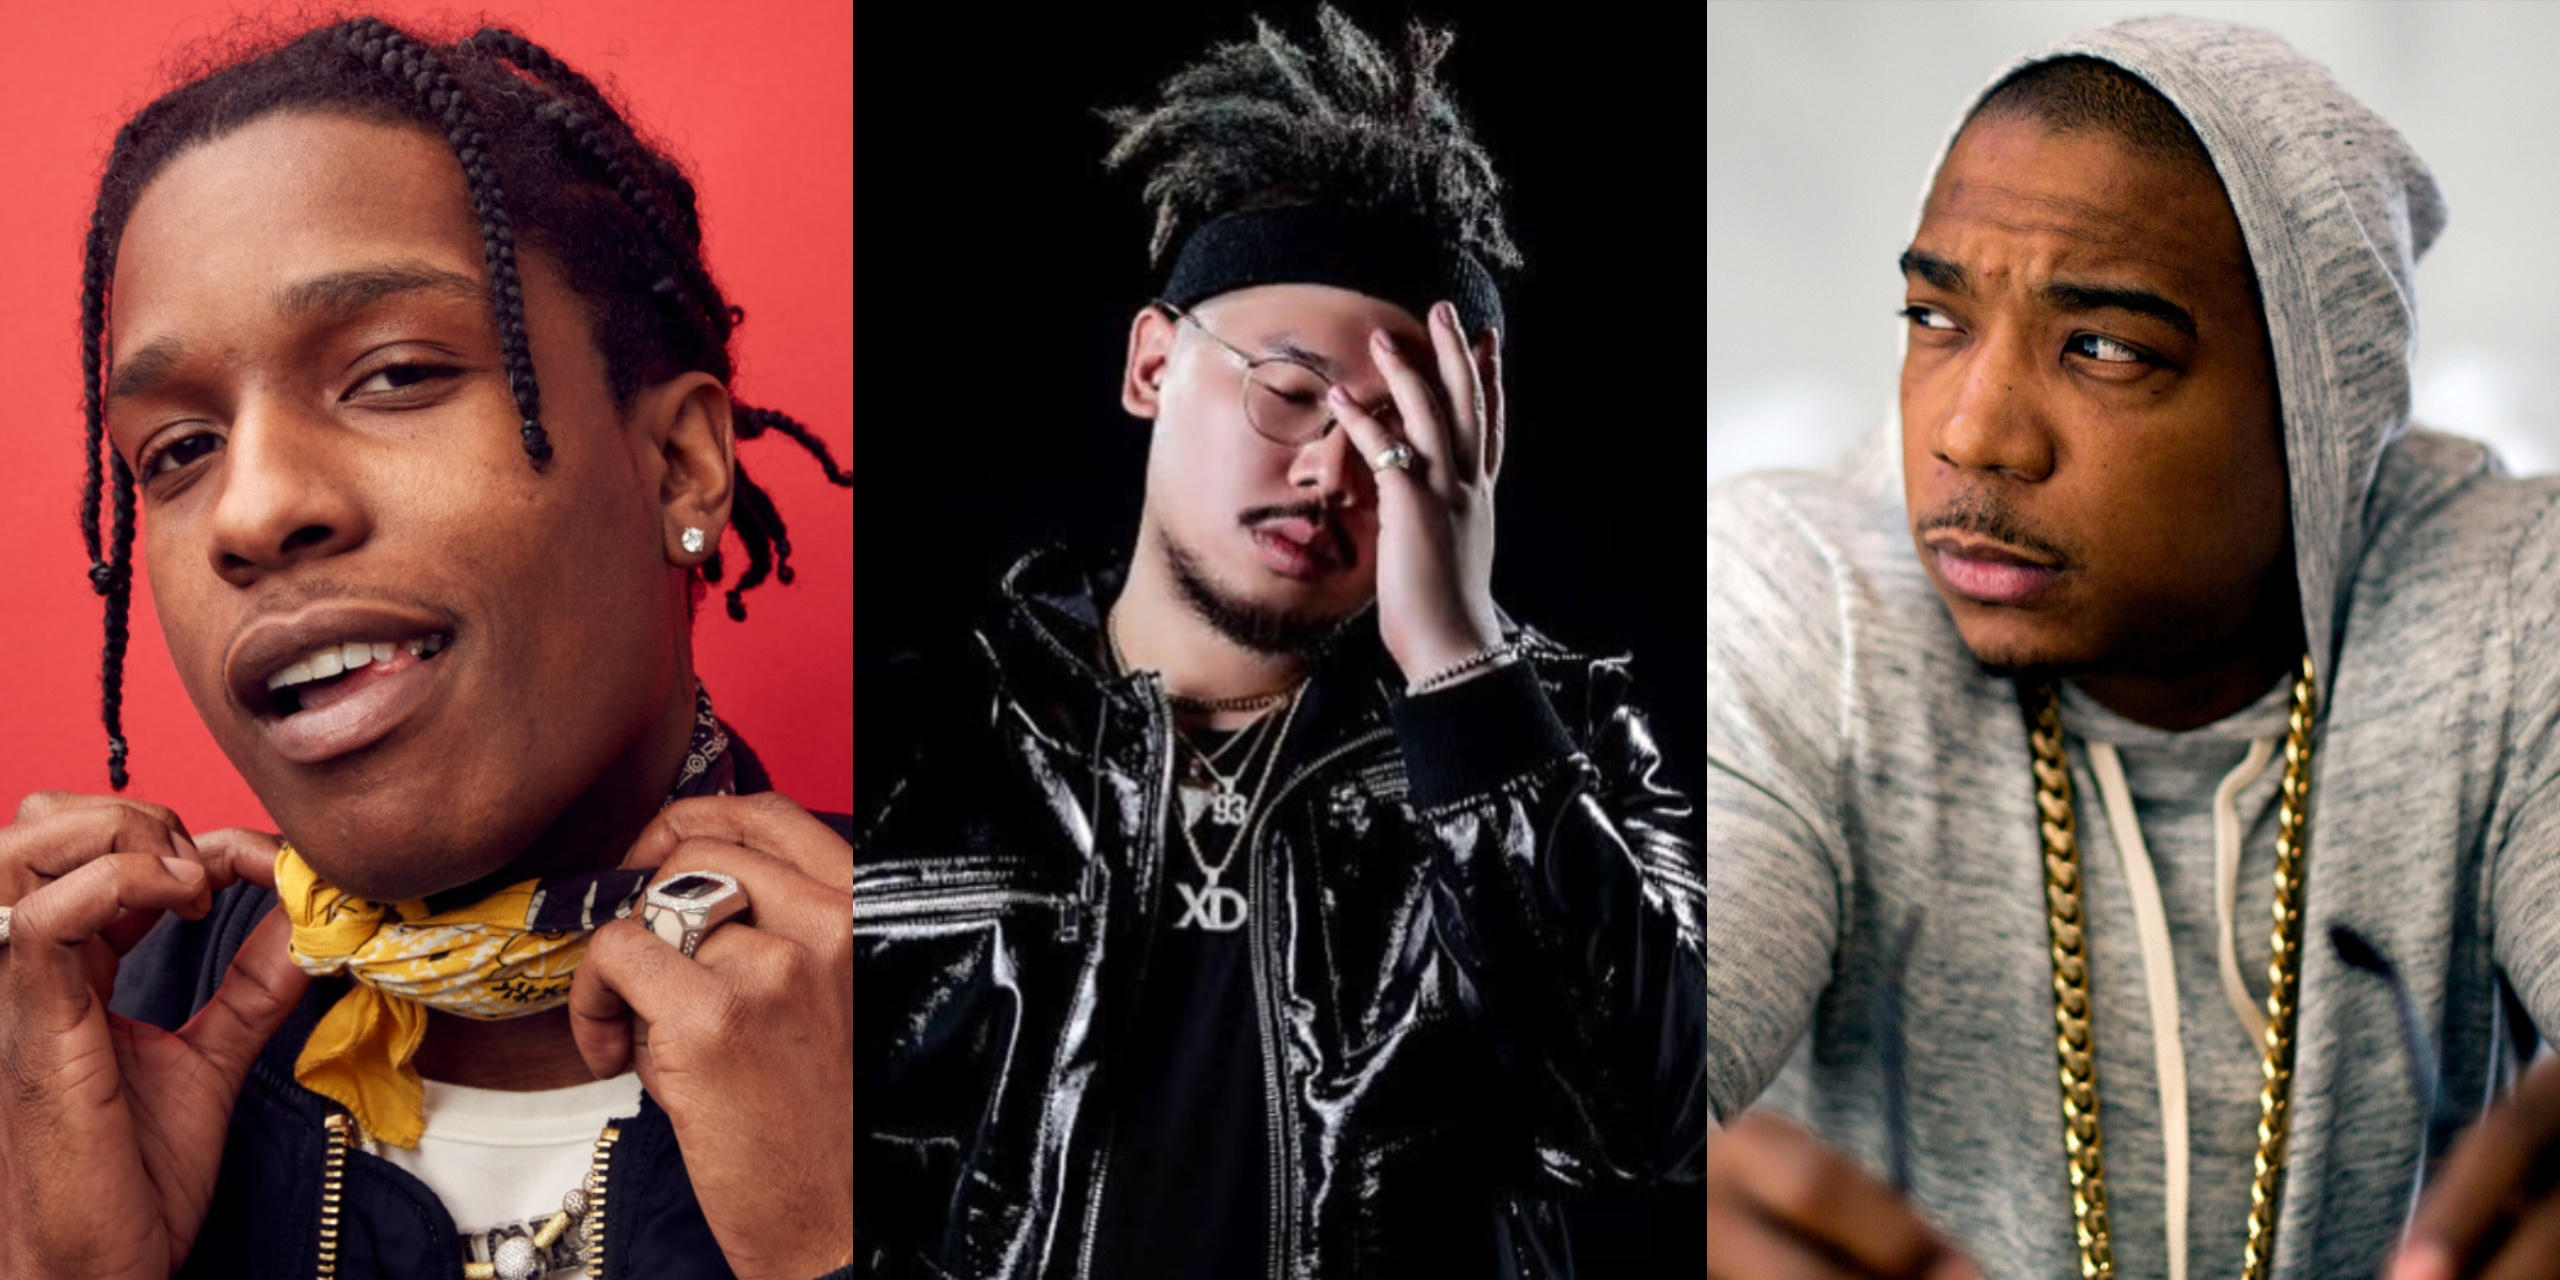 Which VOLO Festival rapper are you? Take this quiz to find out!